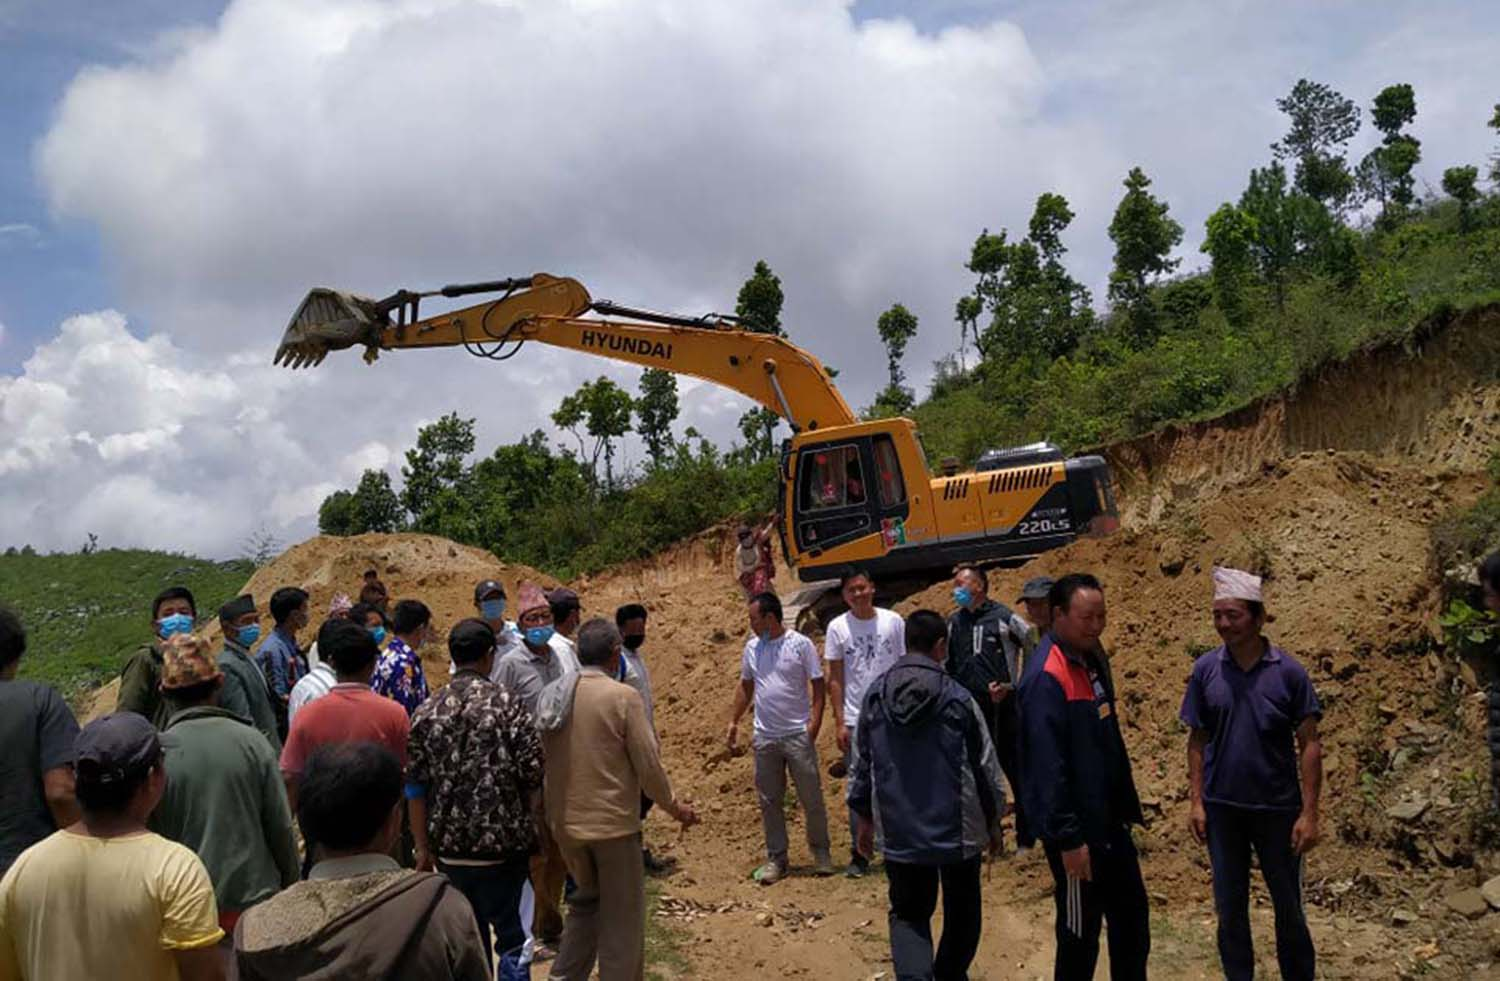 The construction work of the ground started by demolishing Halesigadhi despite all-round protests!!!